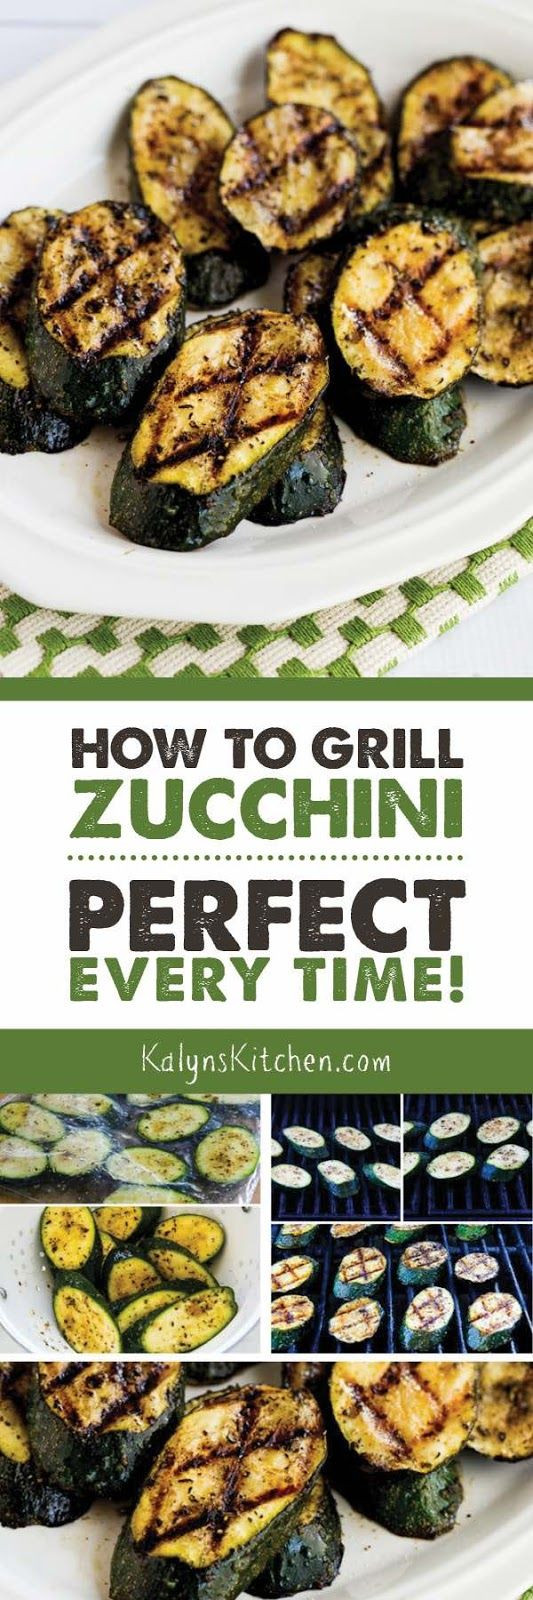 How Long To Grill Zucchini 1000 ideas about Zucchini The Grill on Pinterest